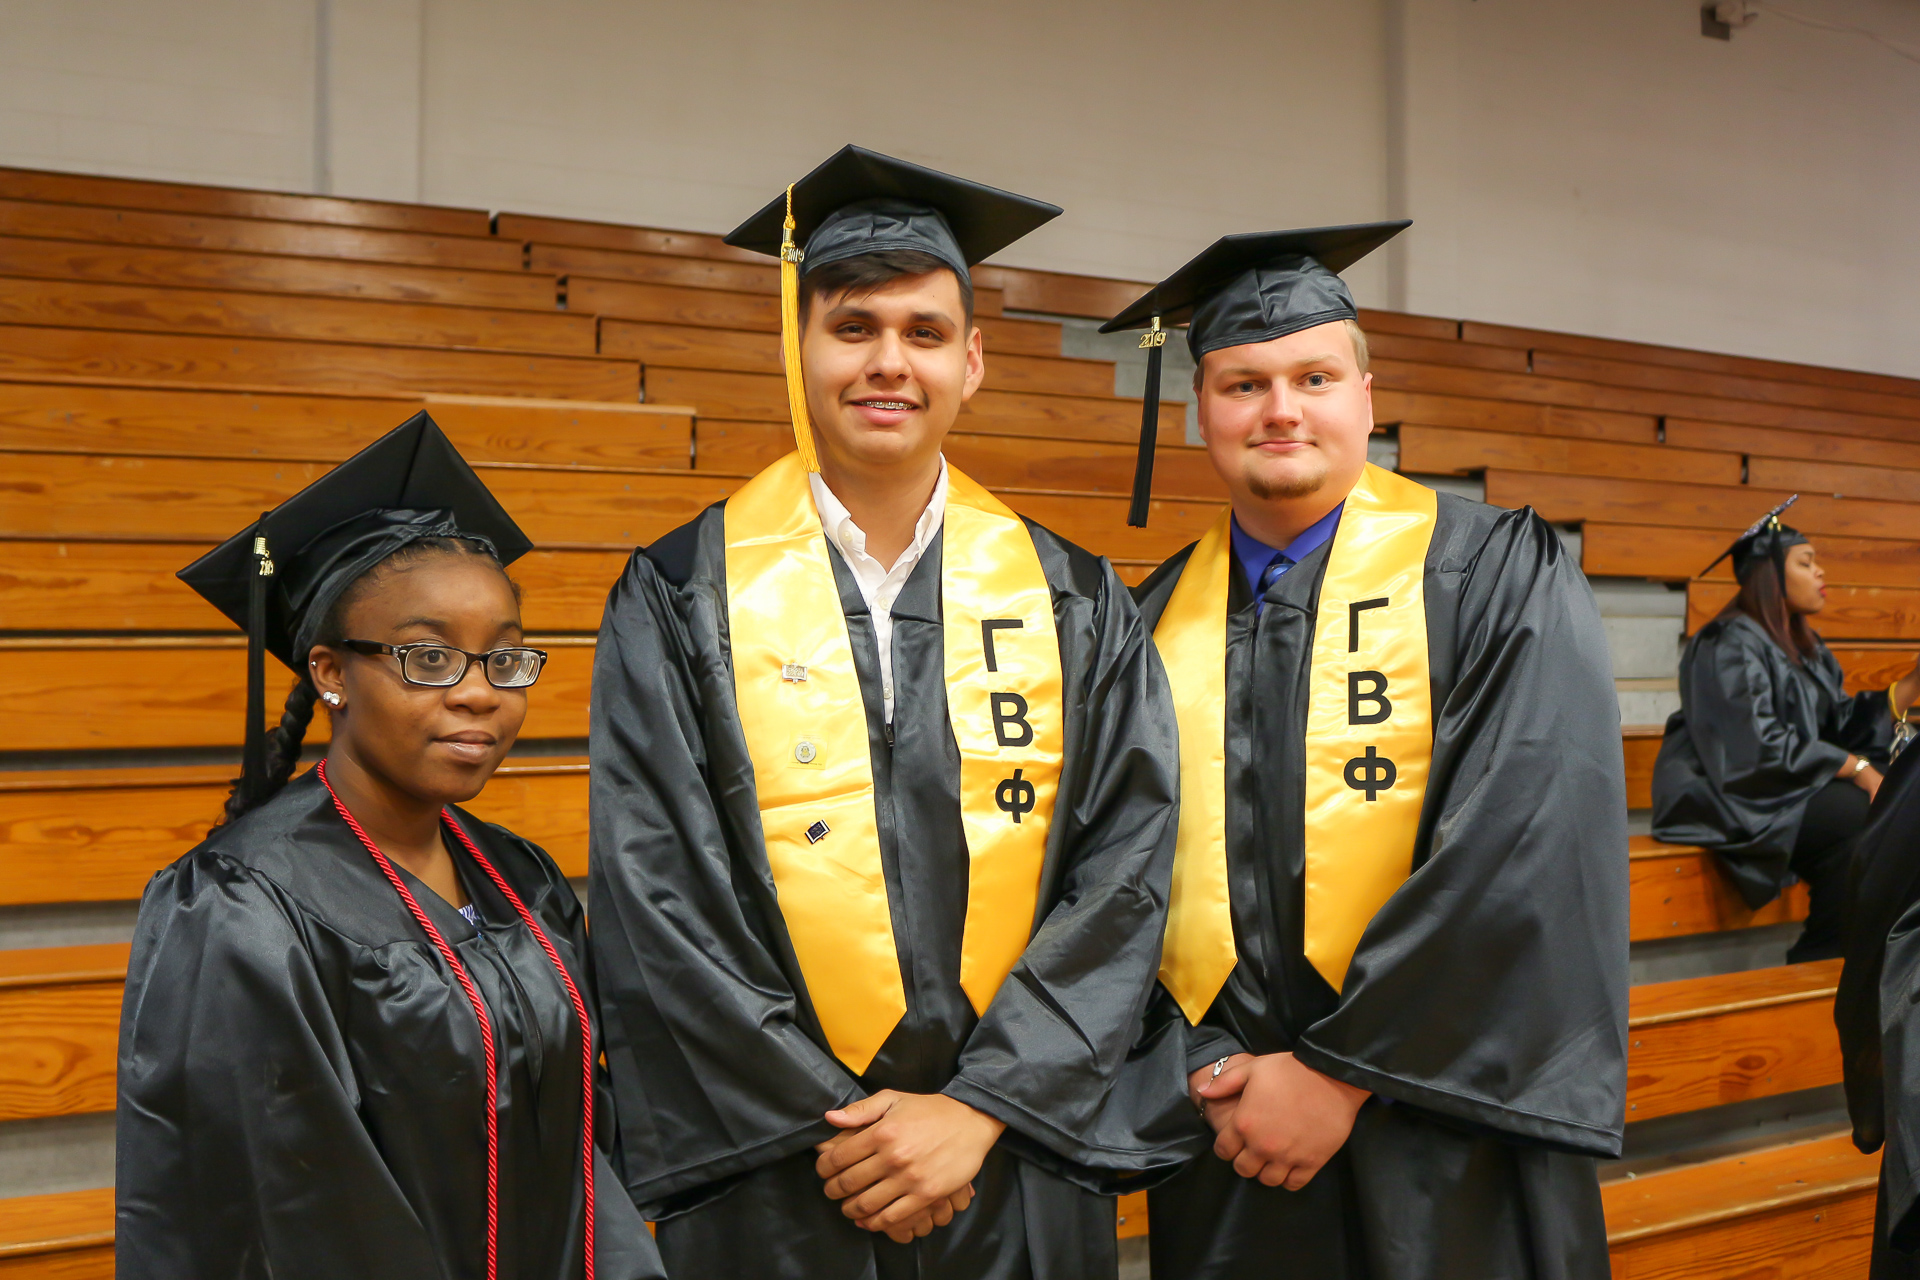 Three students at graduation